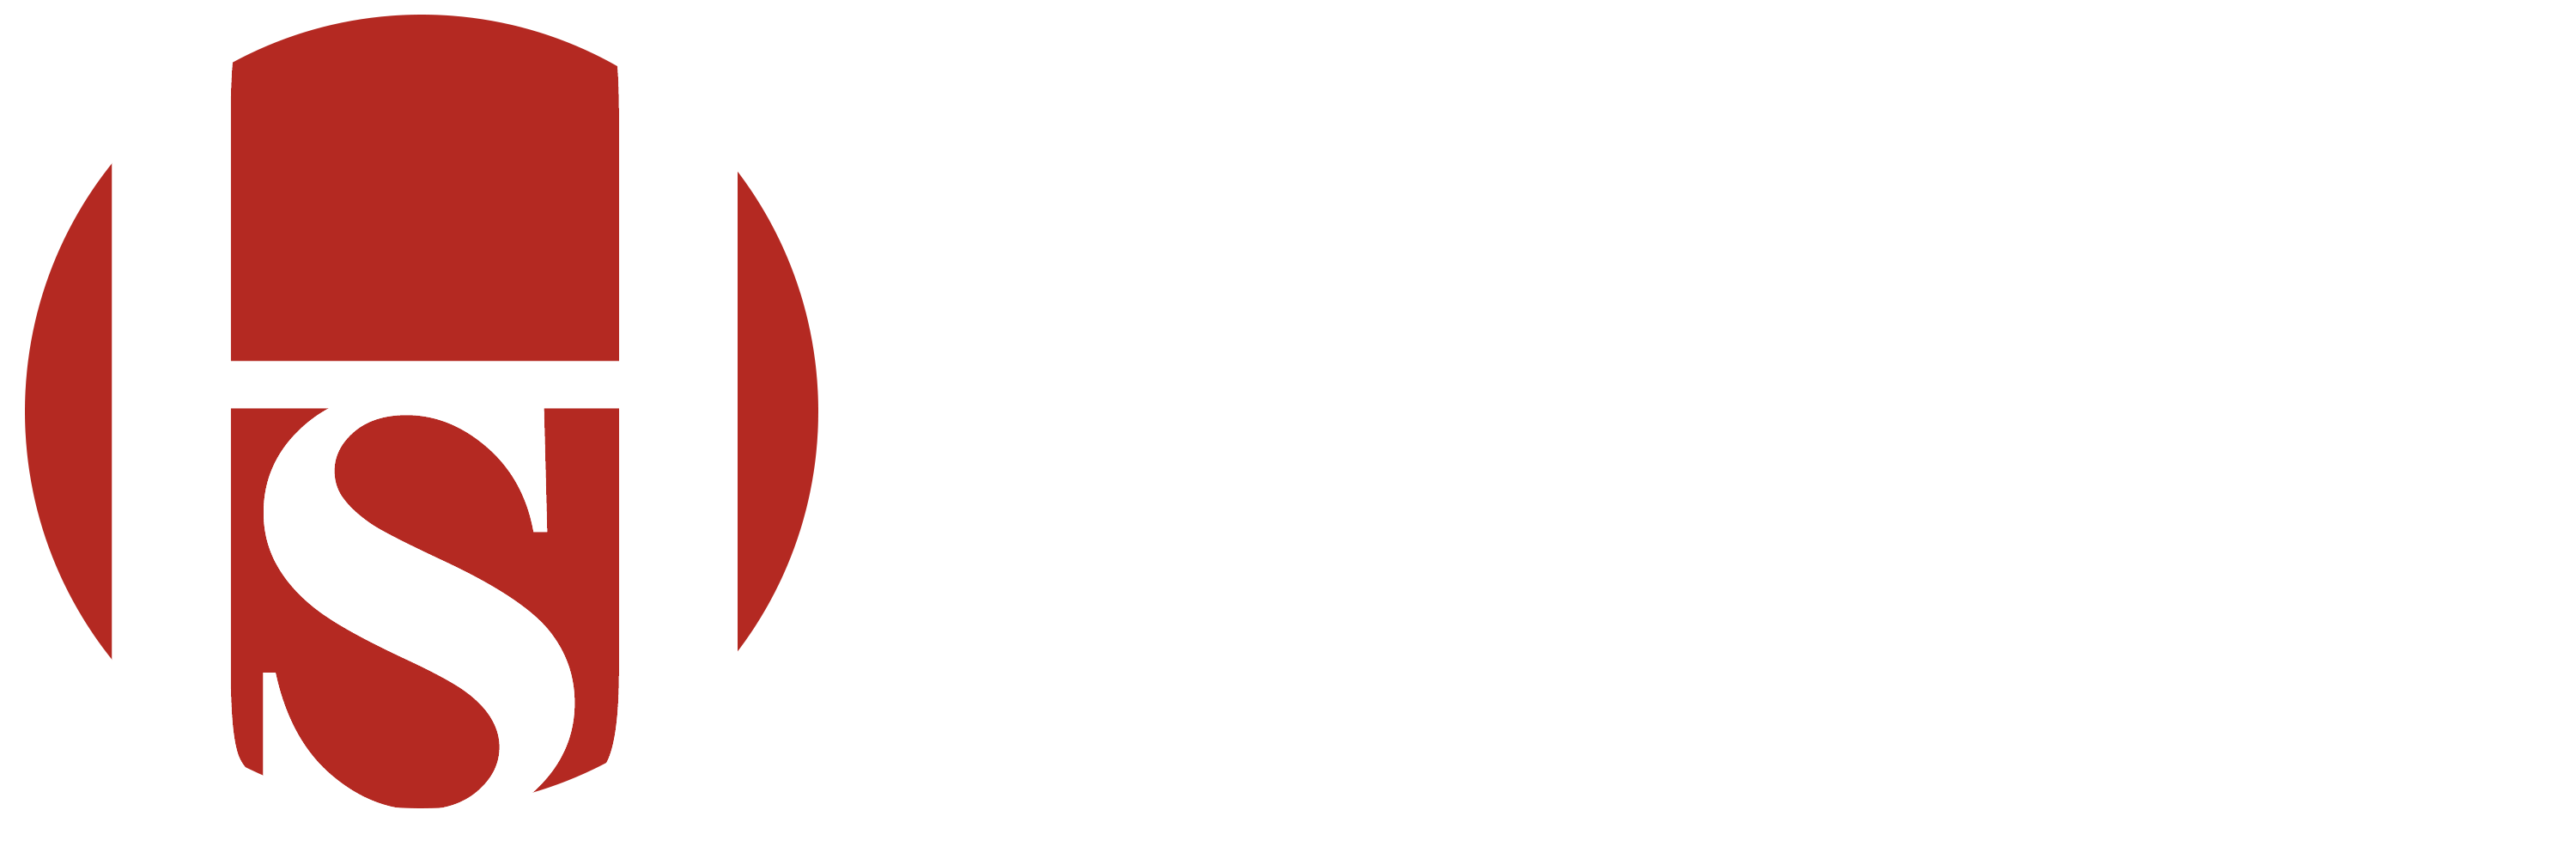 Hands On Seminars Inc.